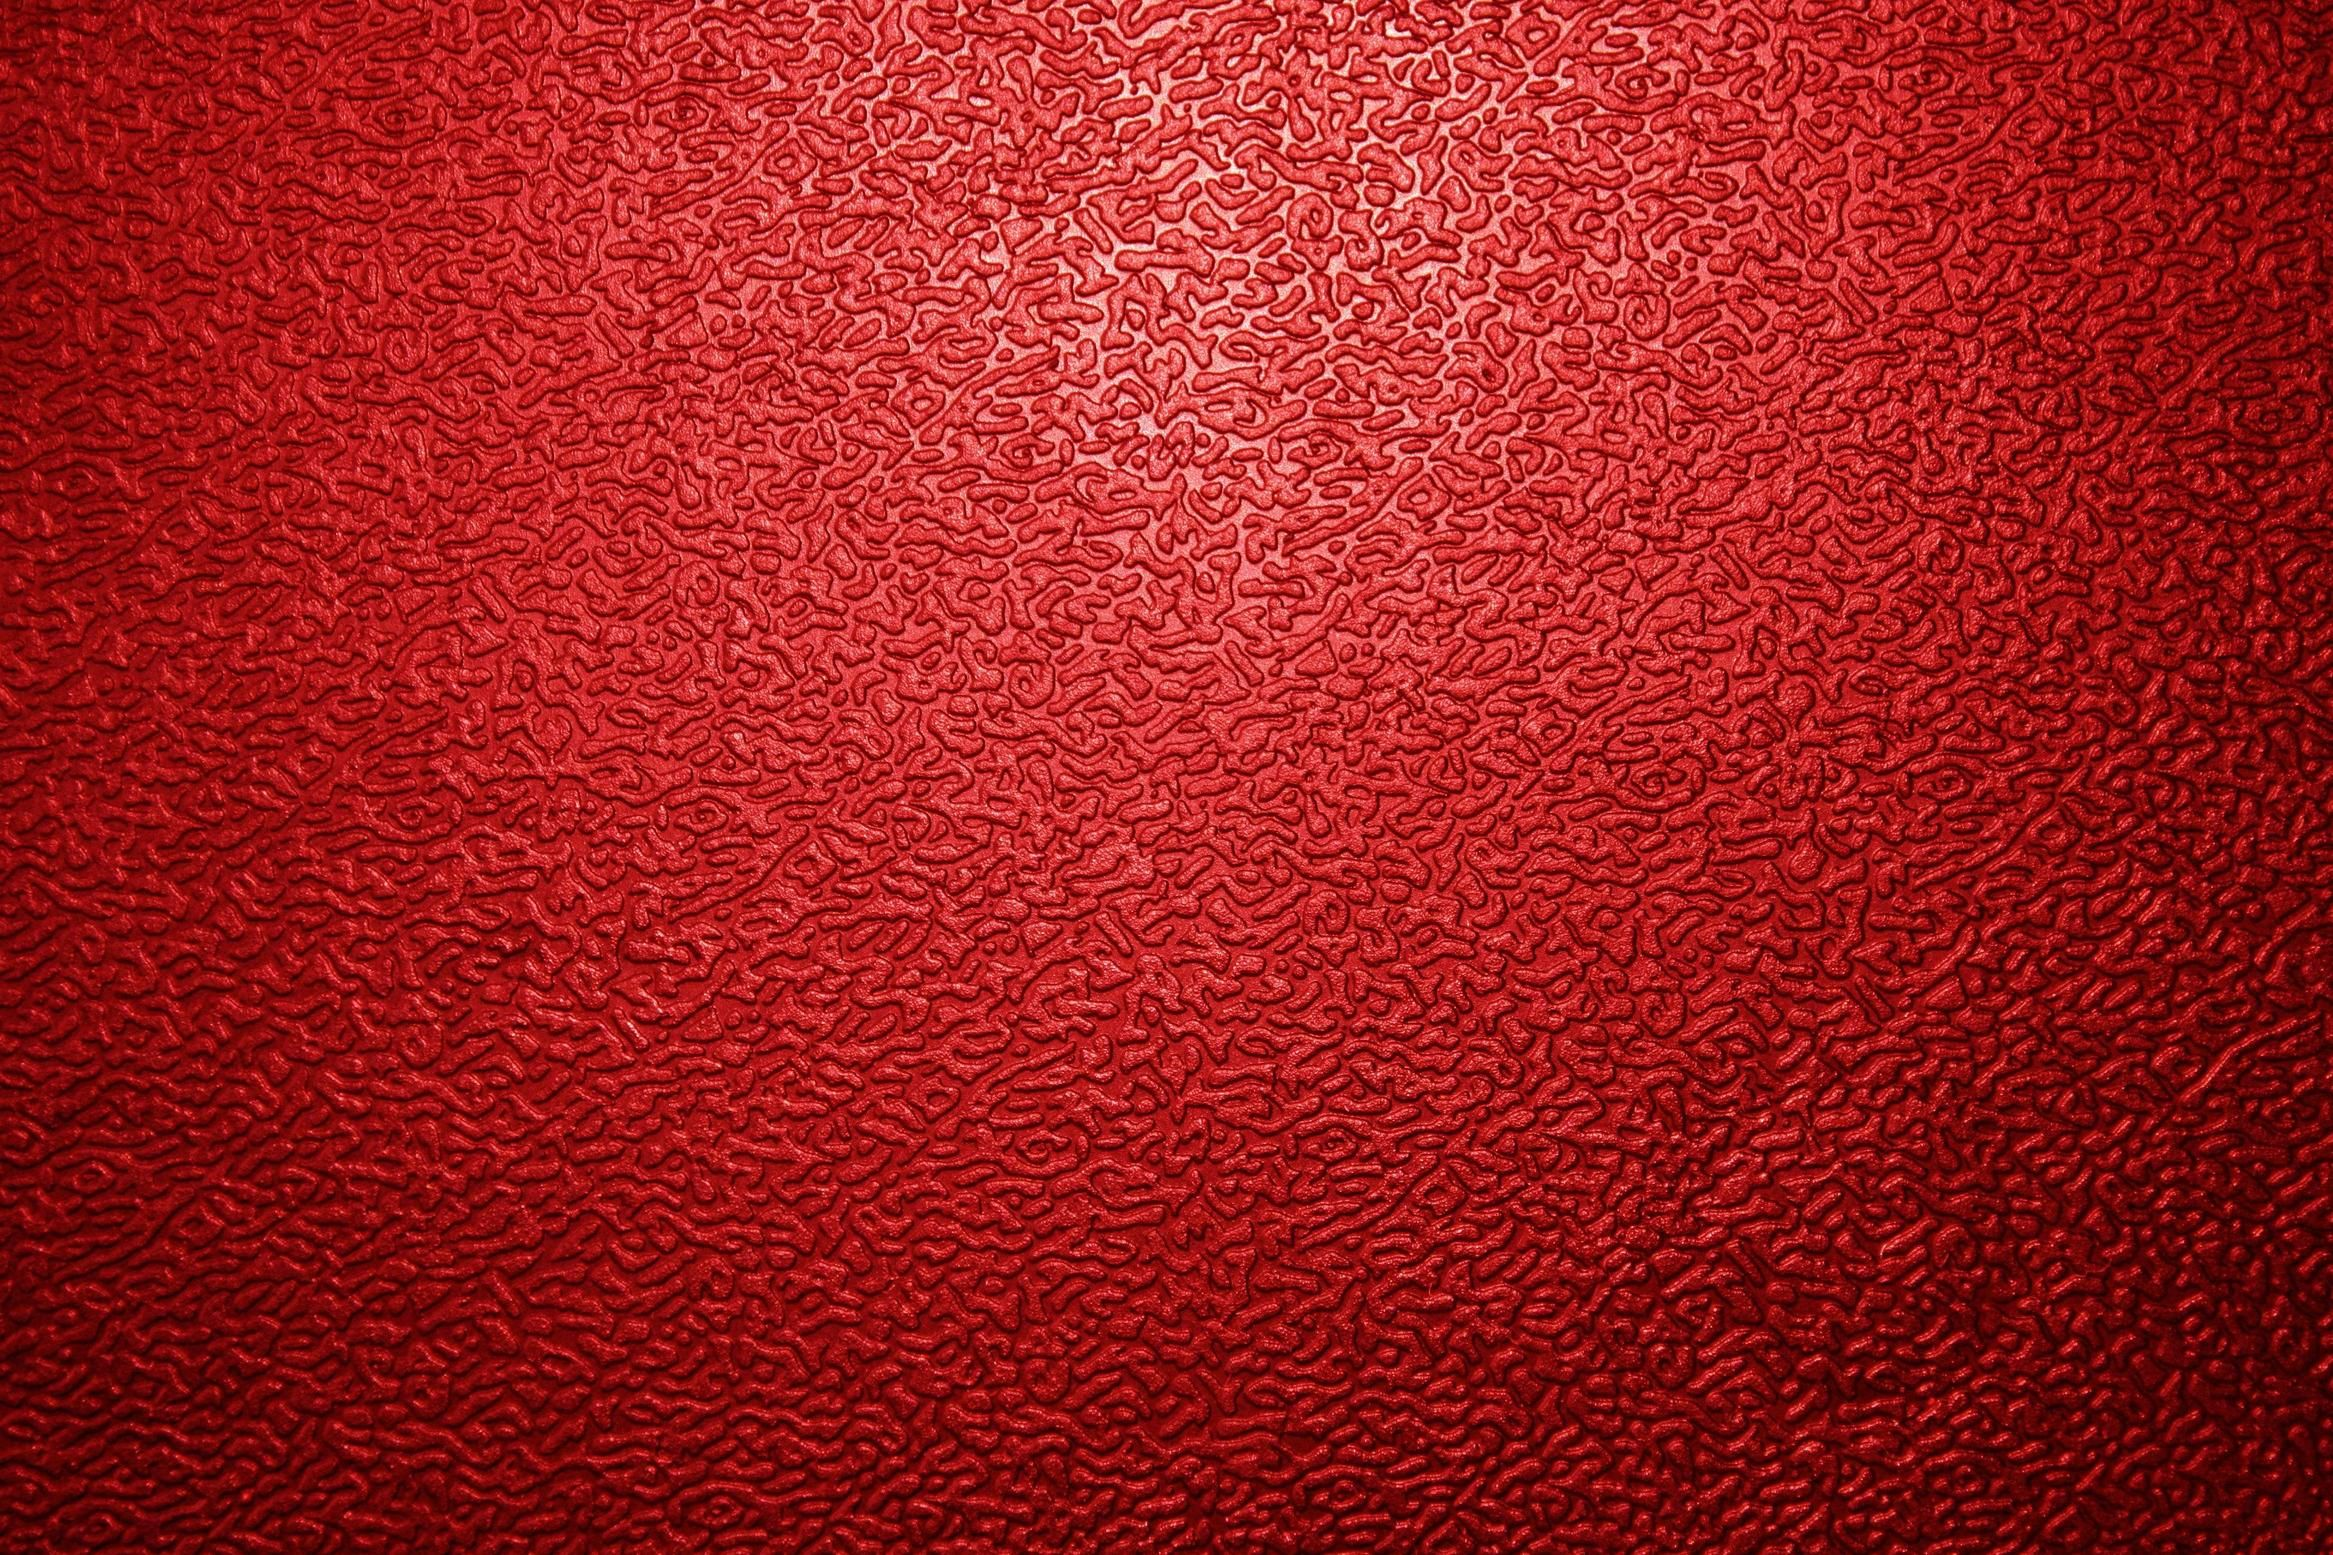 Plain Red HD Wallpaper High Resolution Wallpaper 2333x1555 px 909.20 KB